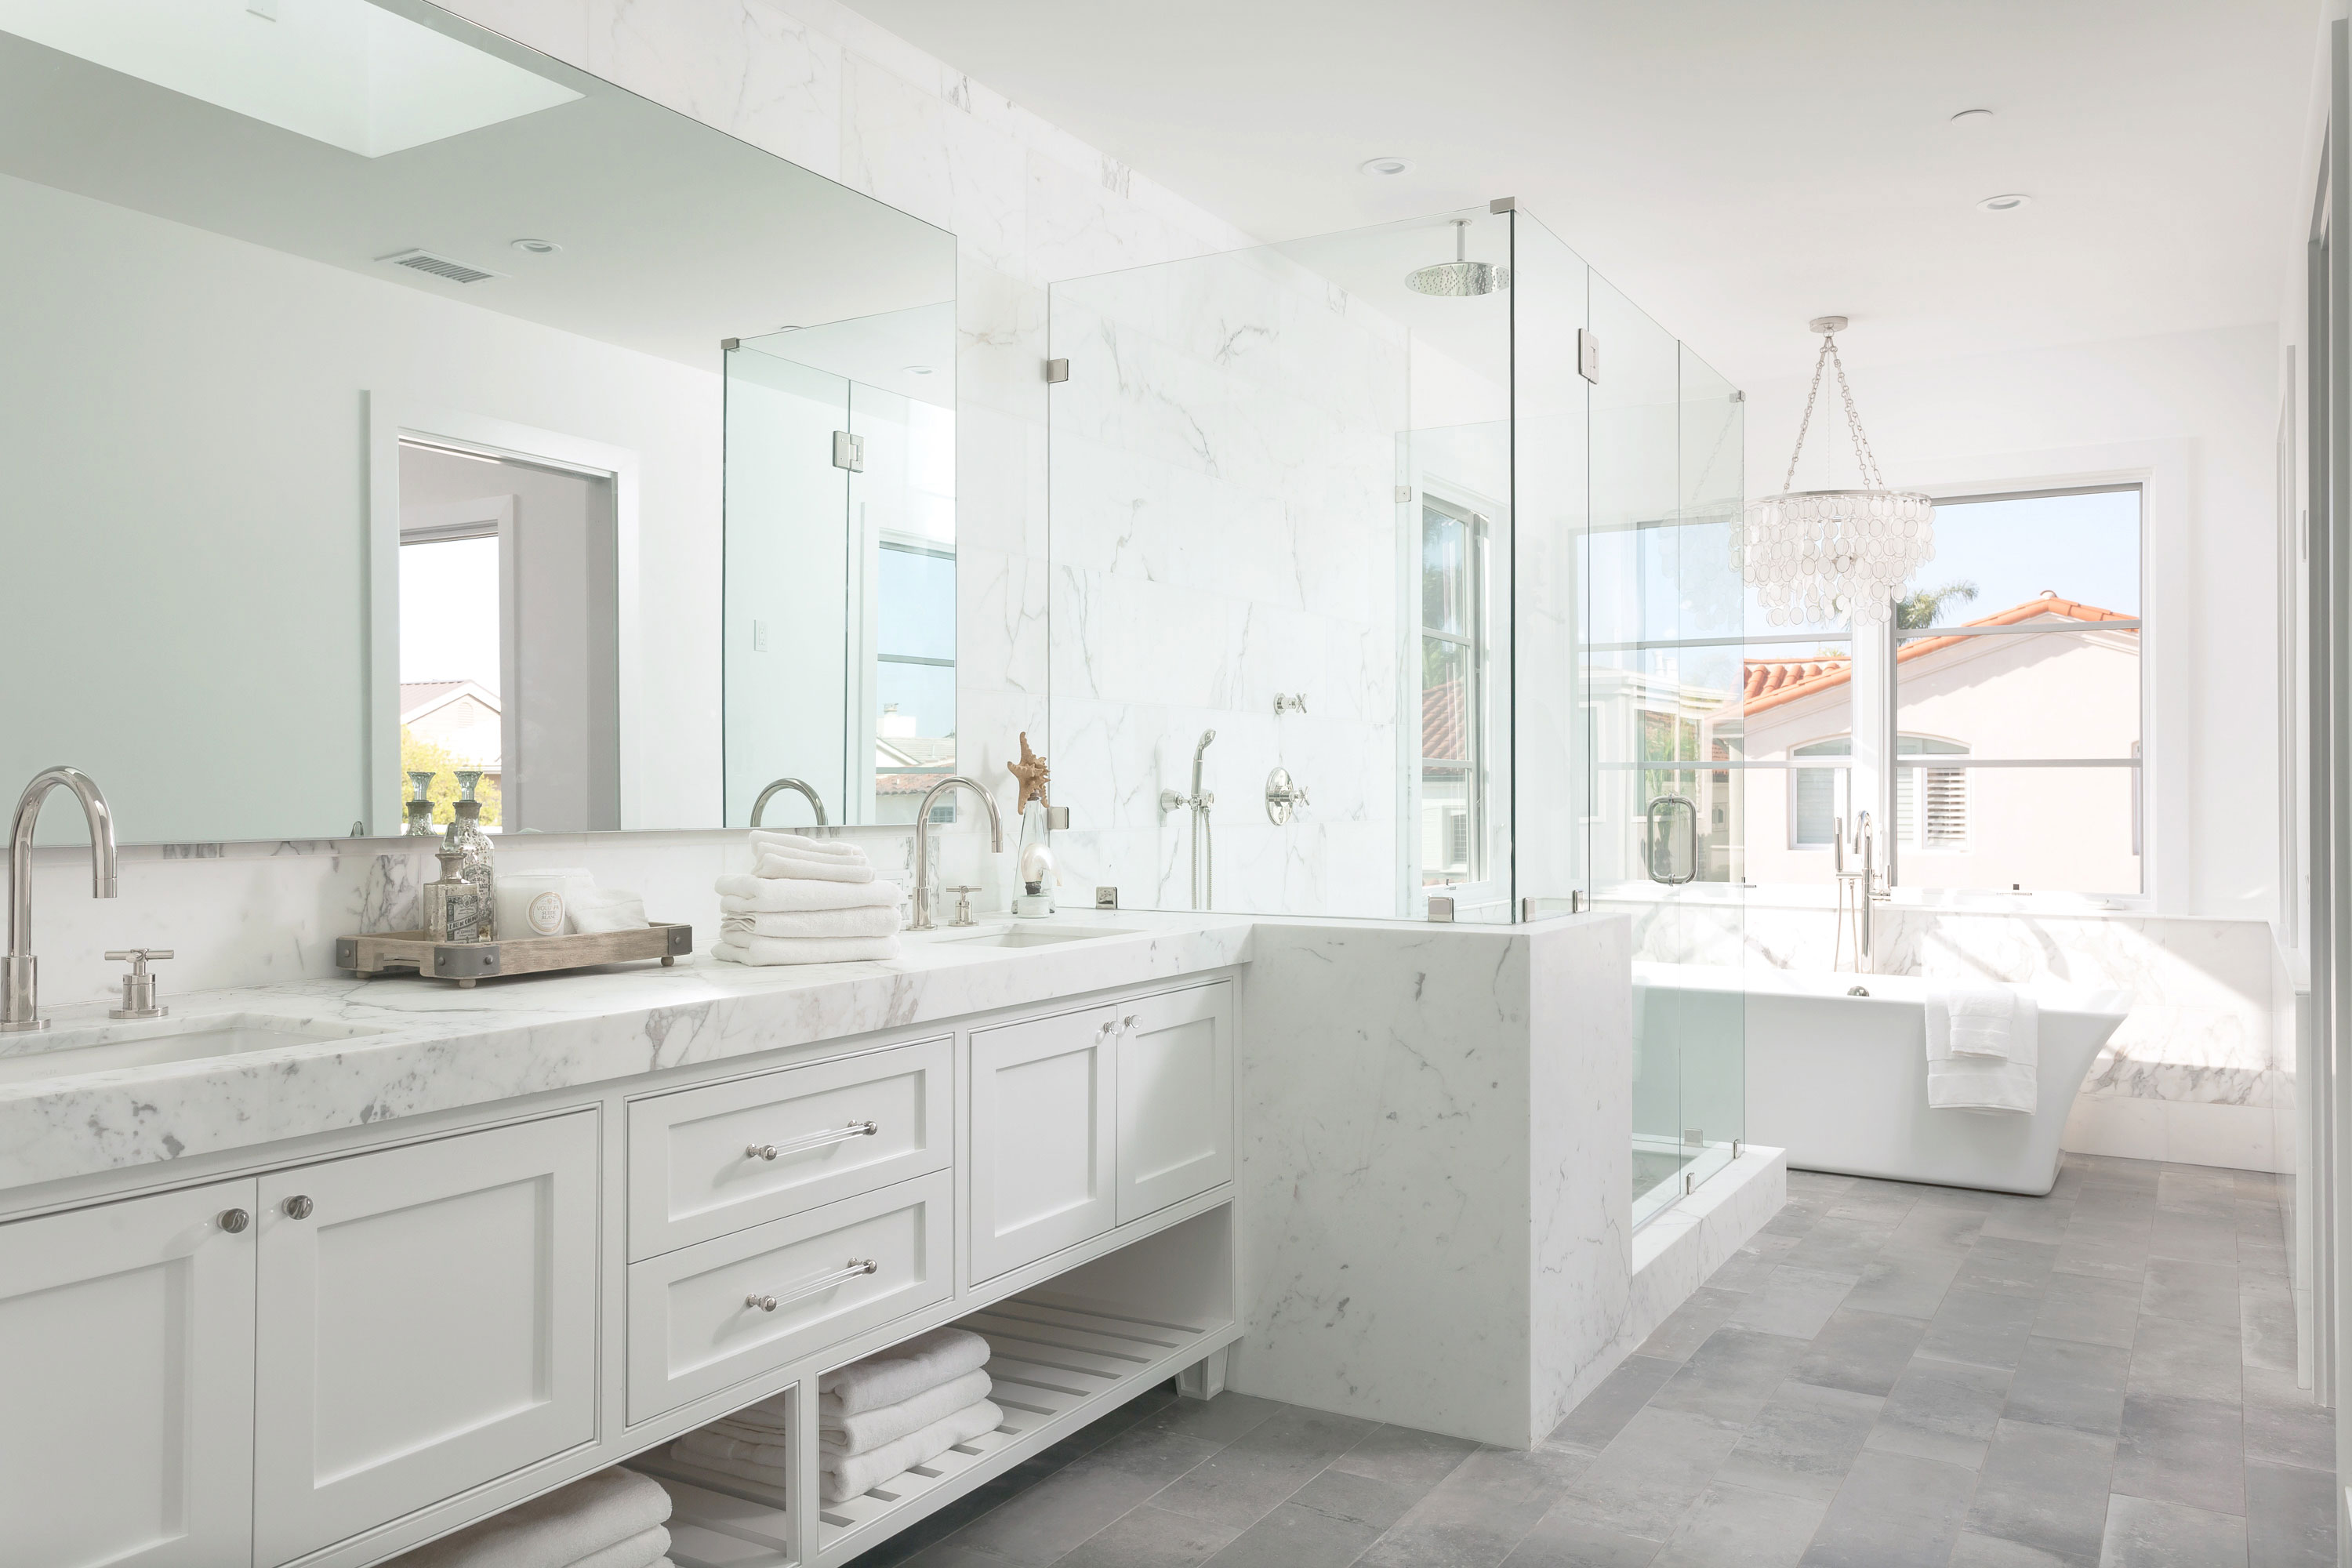 blackband_design_project_west_bay_master_bathroom_1